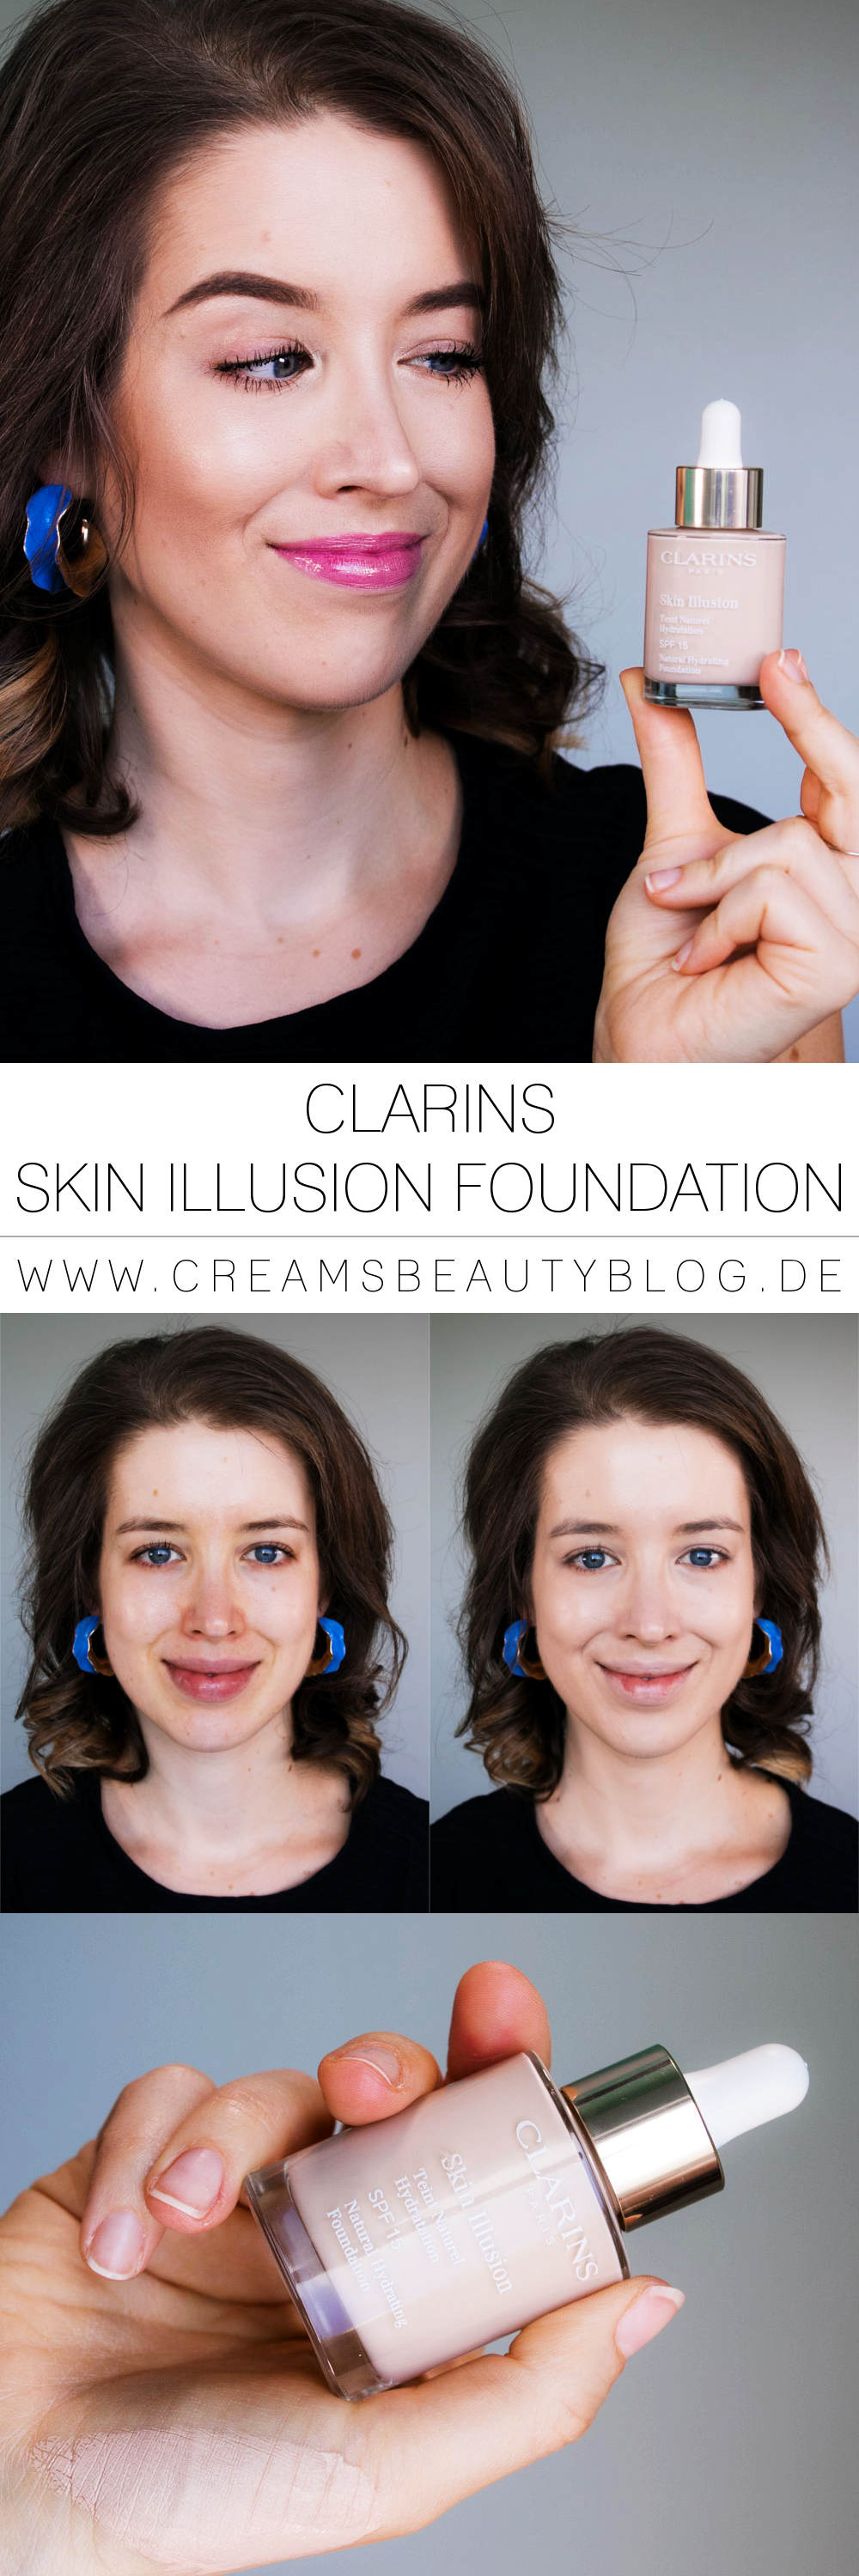 CLARINS Skin Illusion Serum Foundation